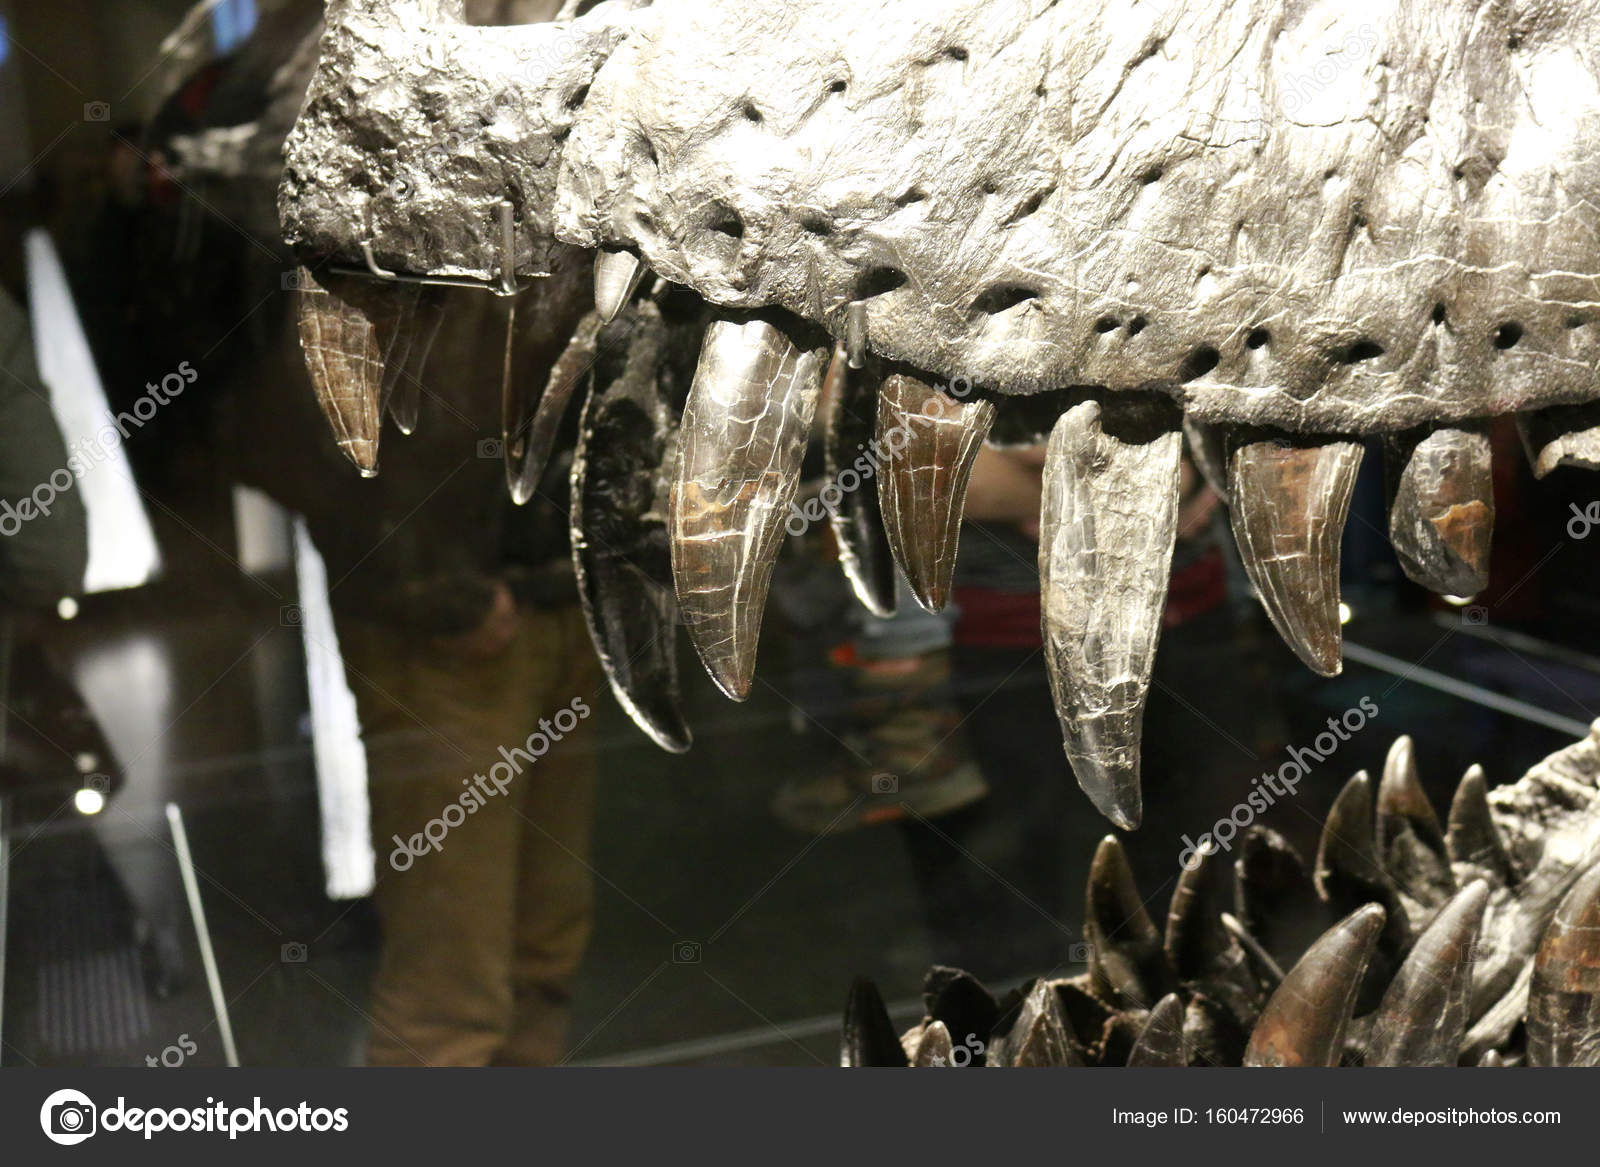 Natural history museum berlin stock editorial photo 360ber the head of the tyrannus saurus rex tristan otto natural history museum berlin photo by 360ber thecheapjerseys Gallery